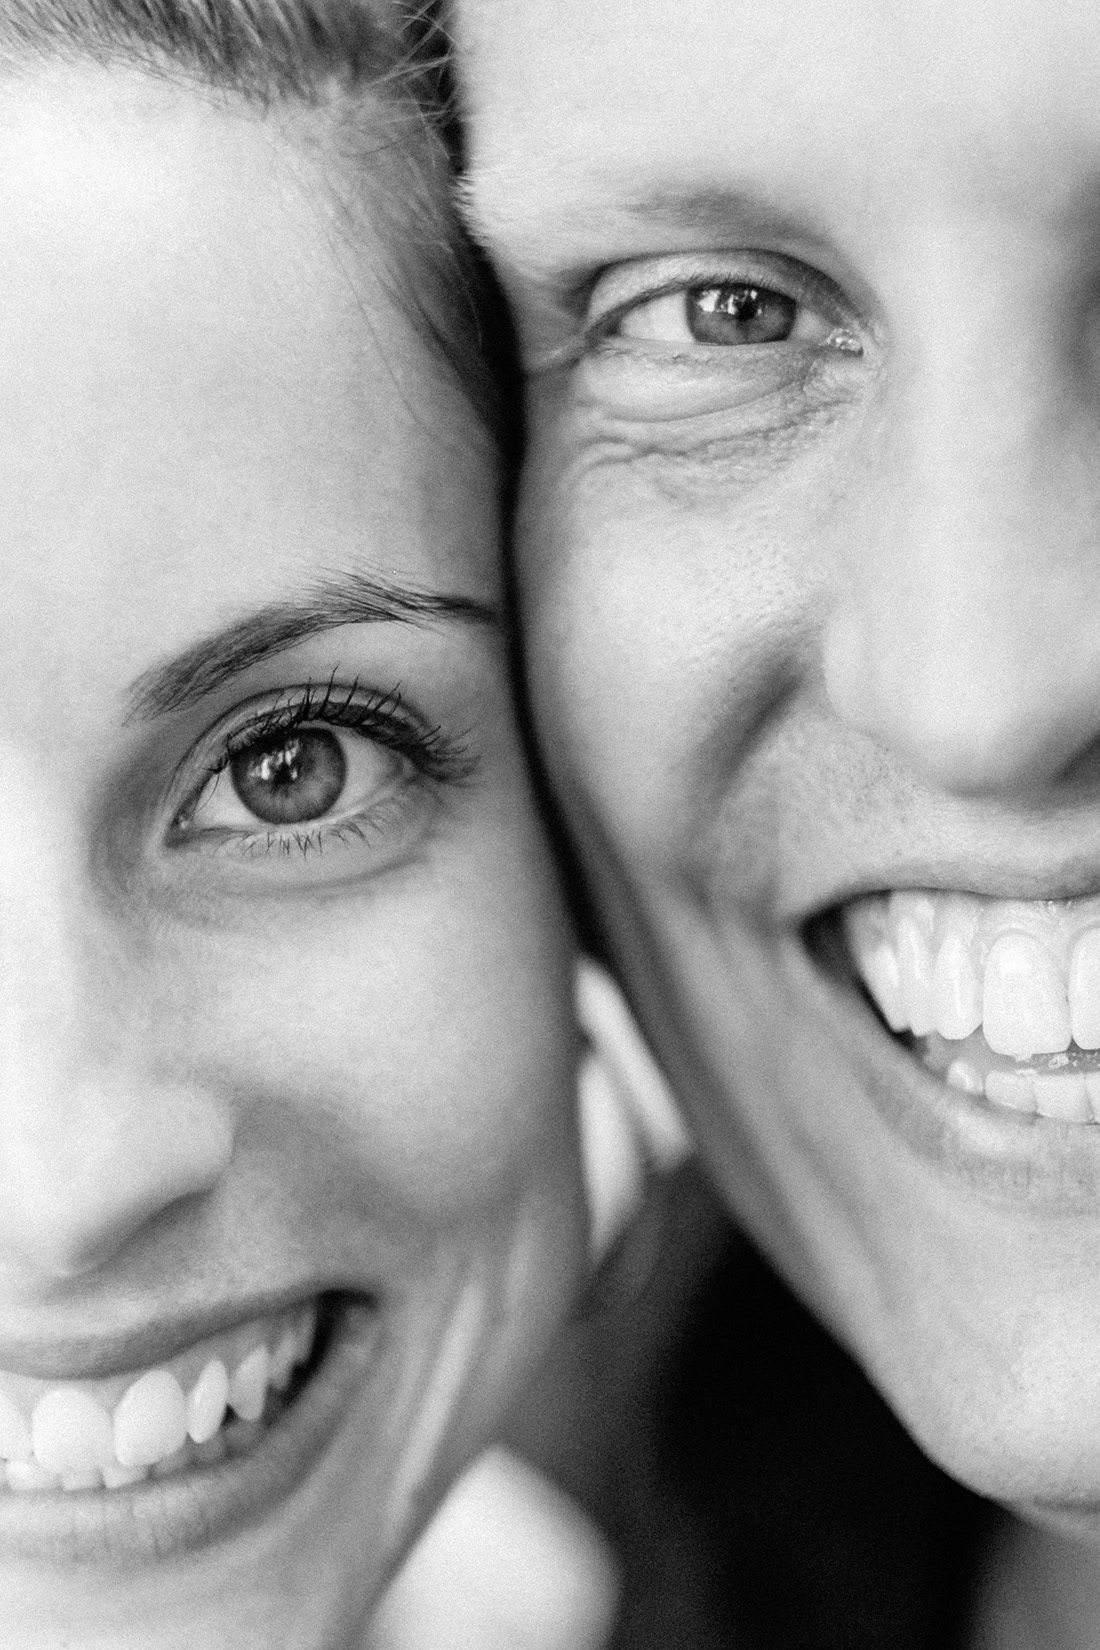 Black and white close up photo of engaged couple